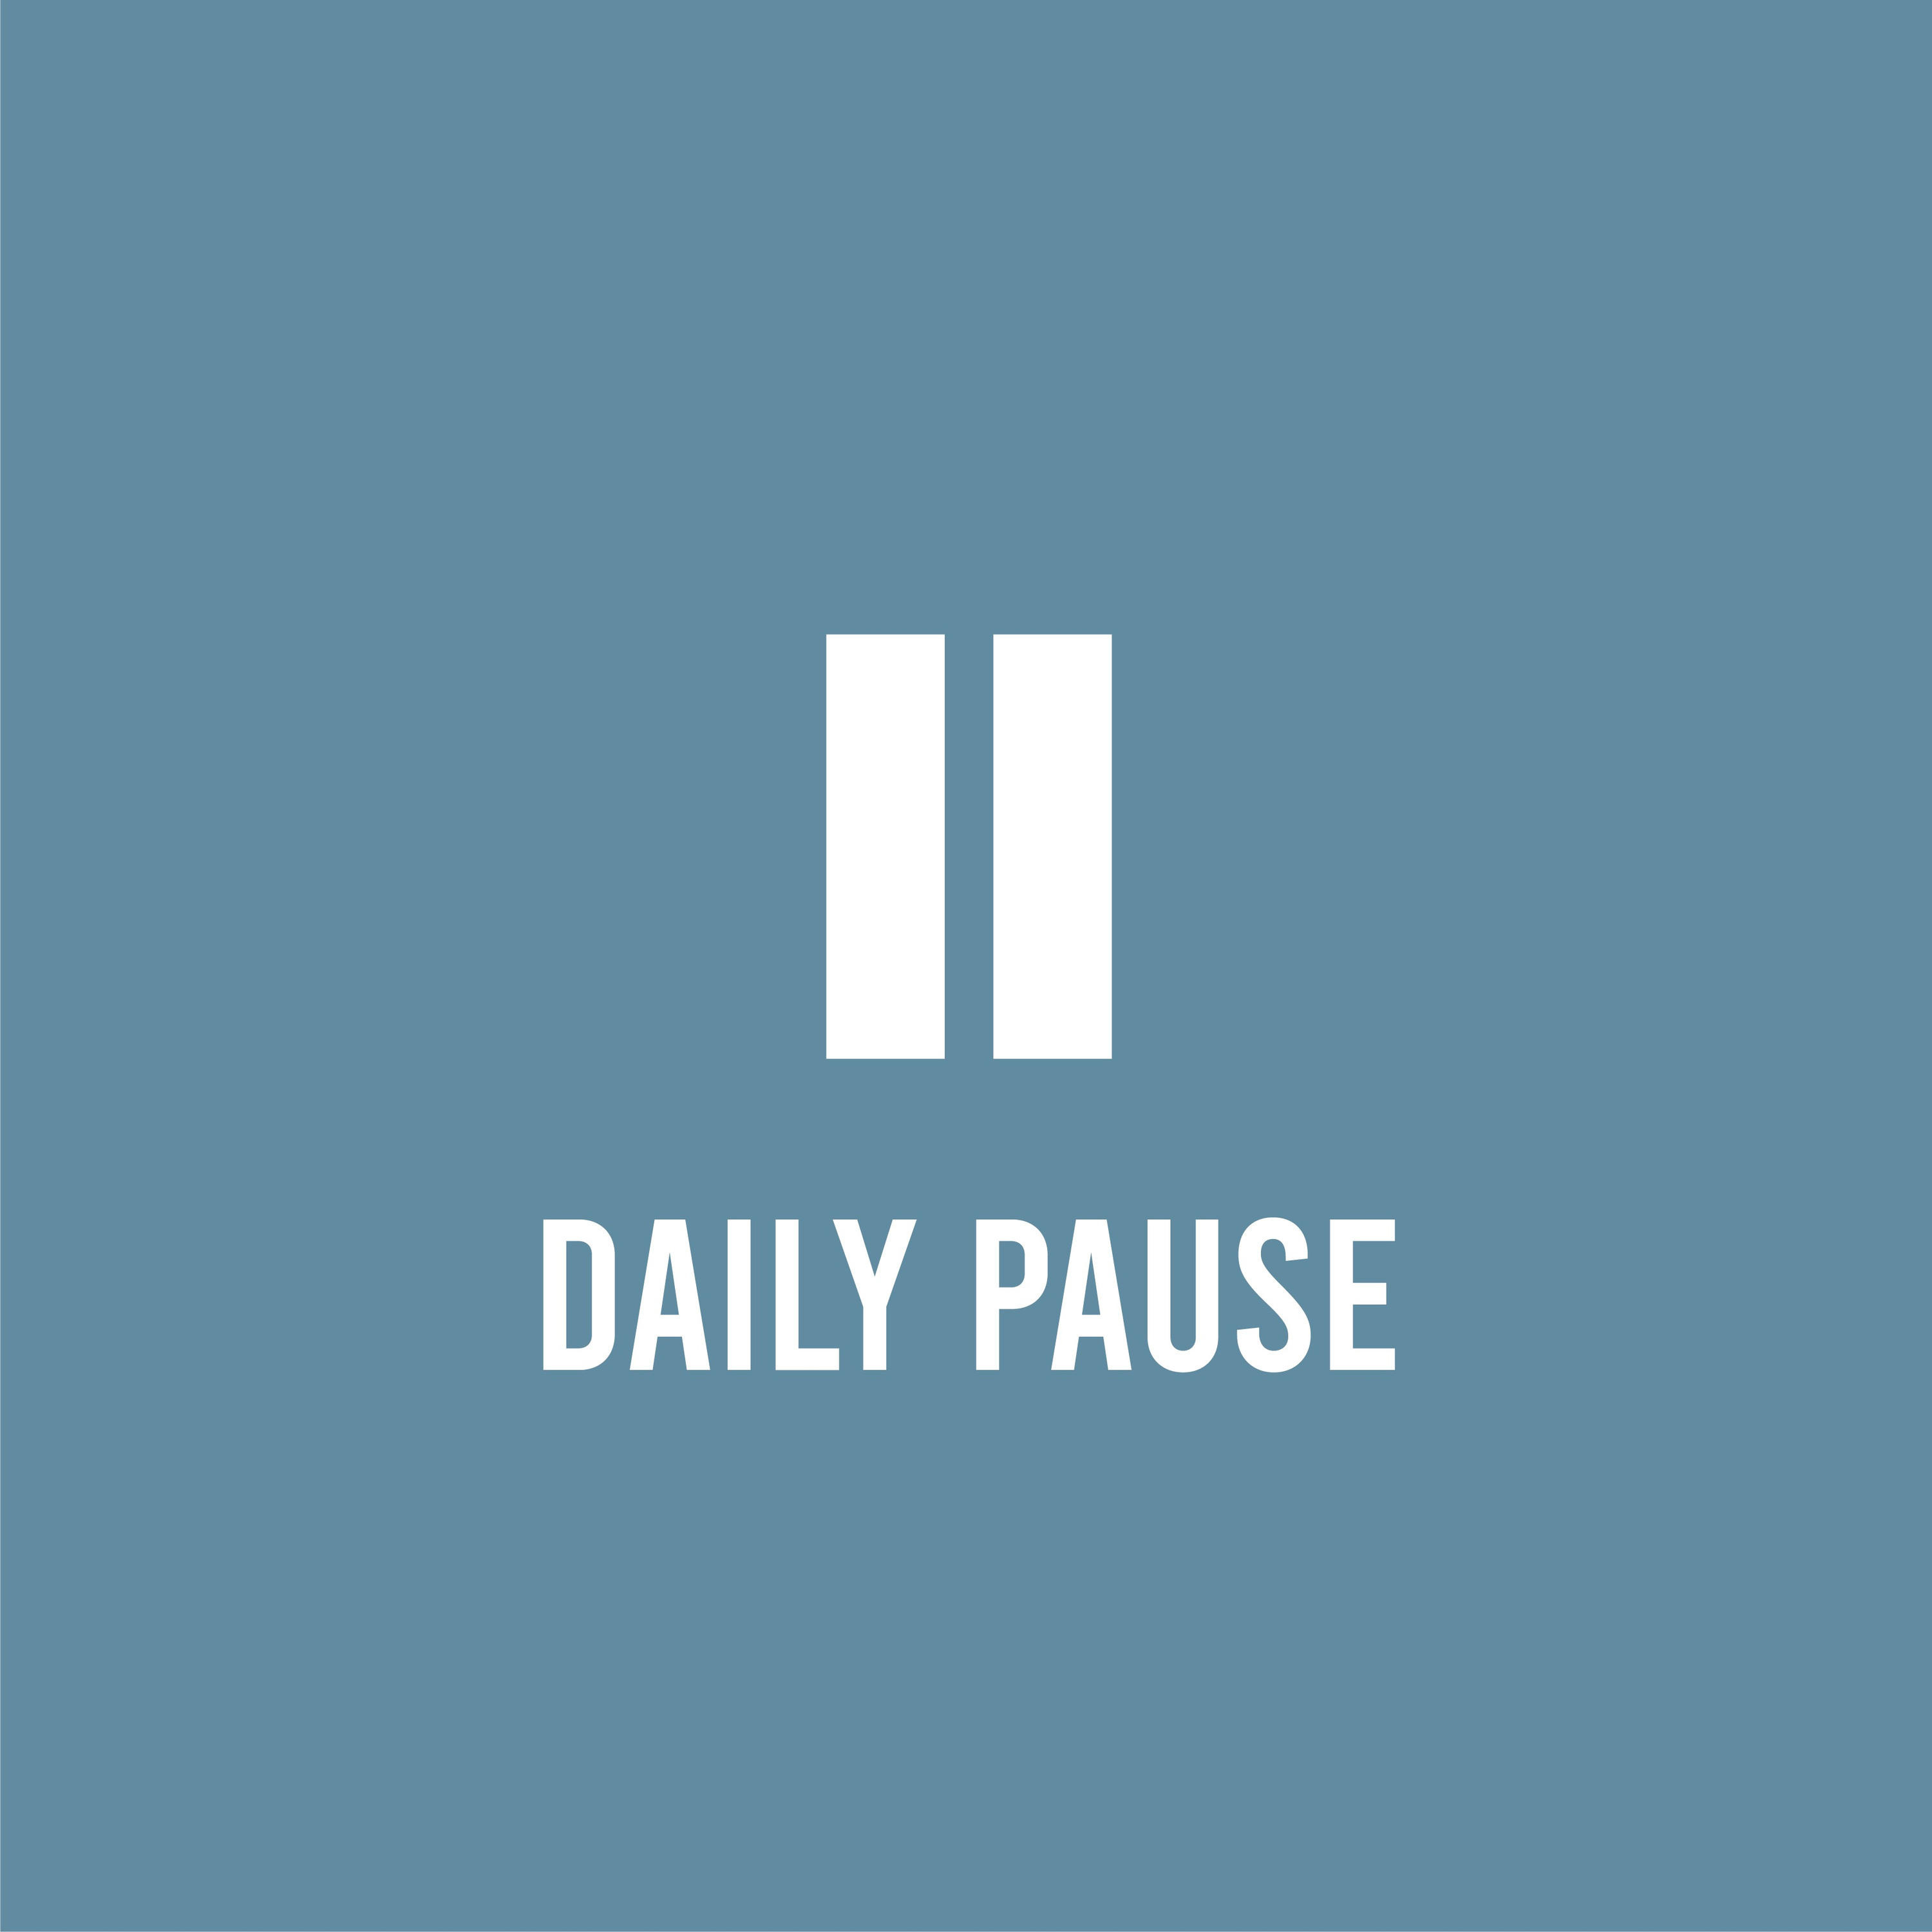 Daily Pause